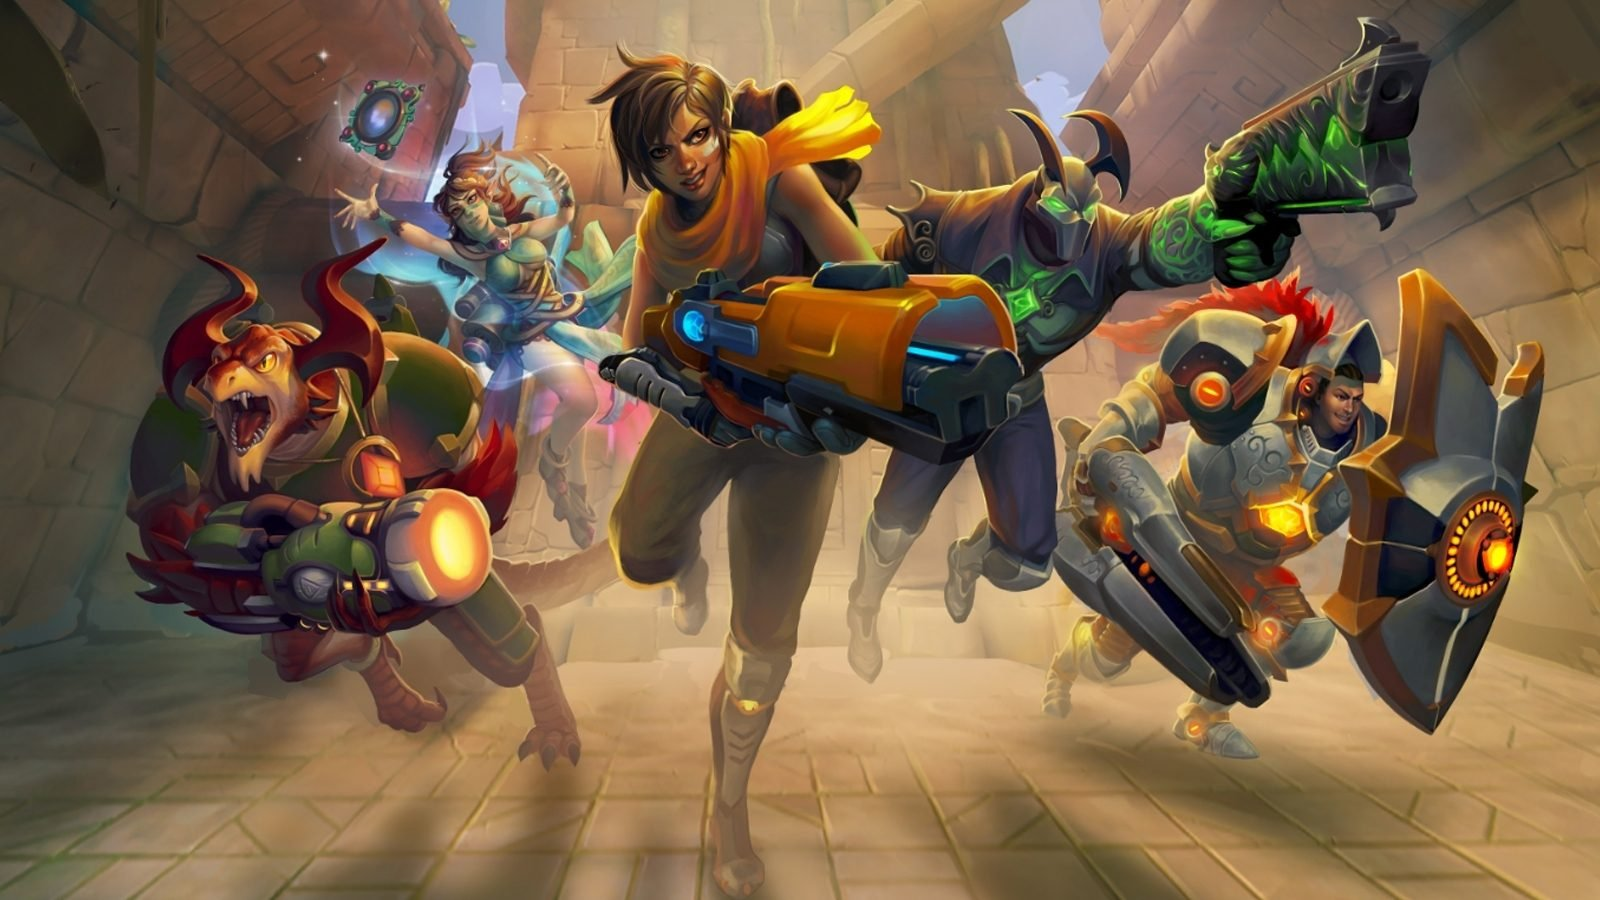 Paladins Cross-Play Has Been Delayed, Dev Says